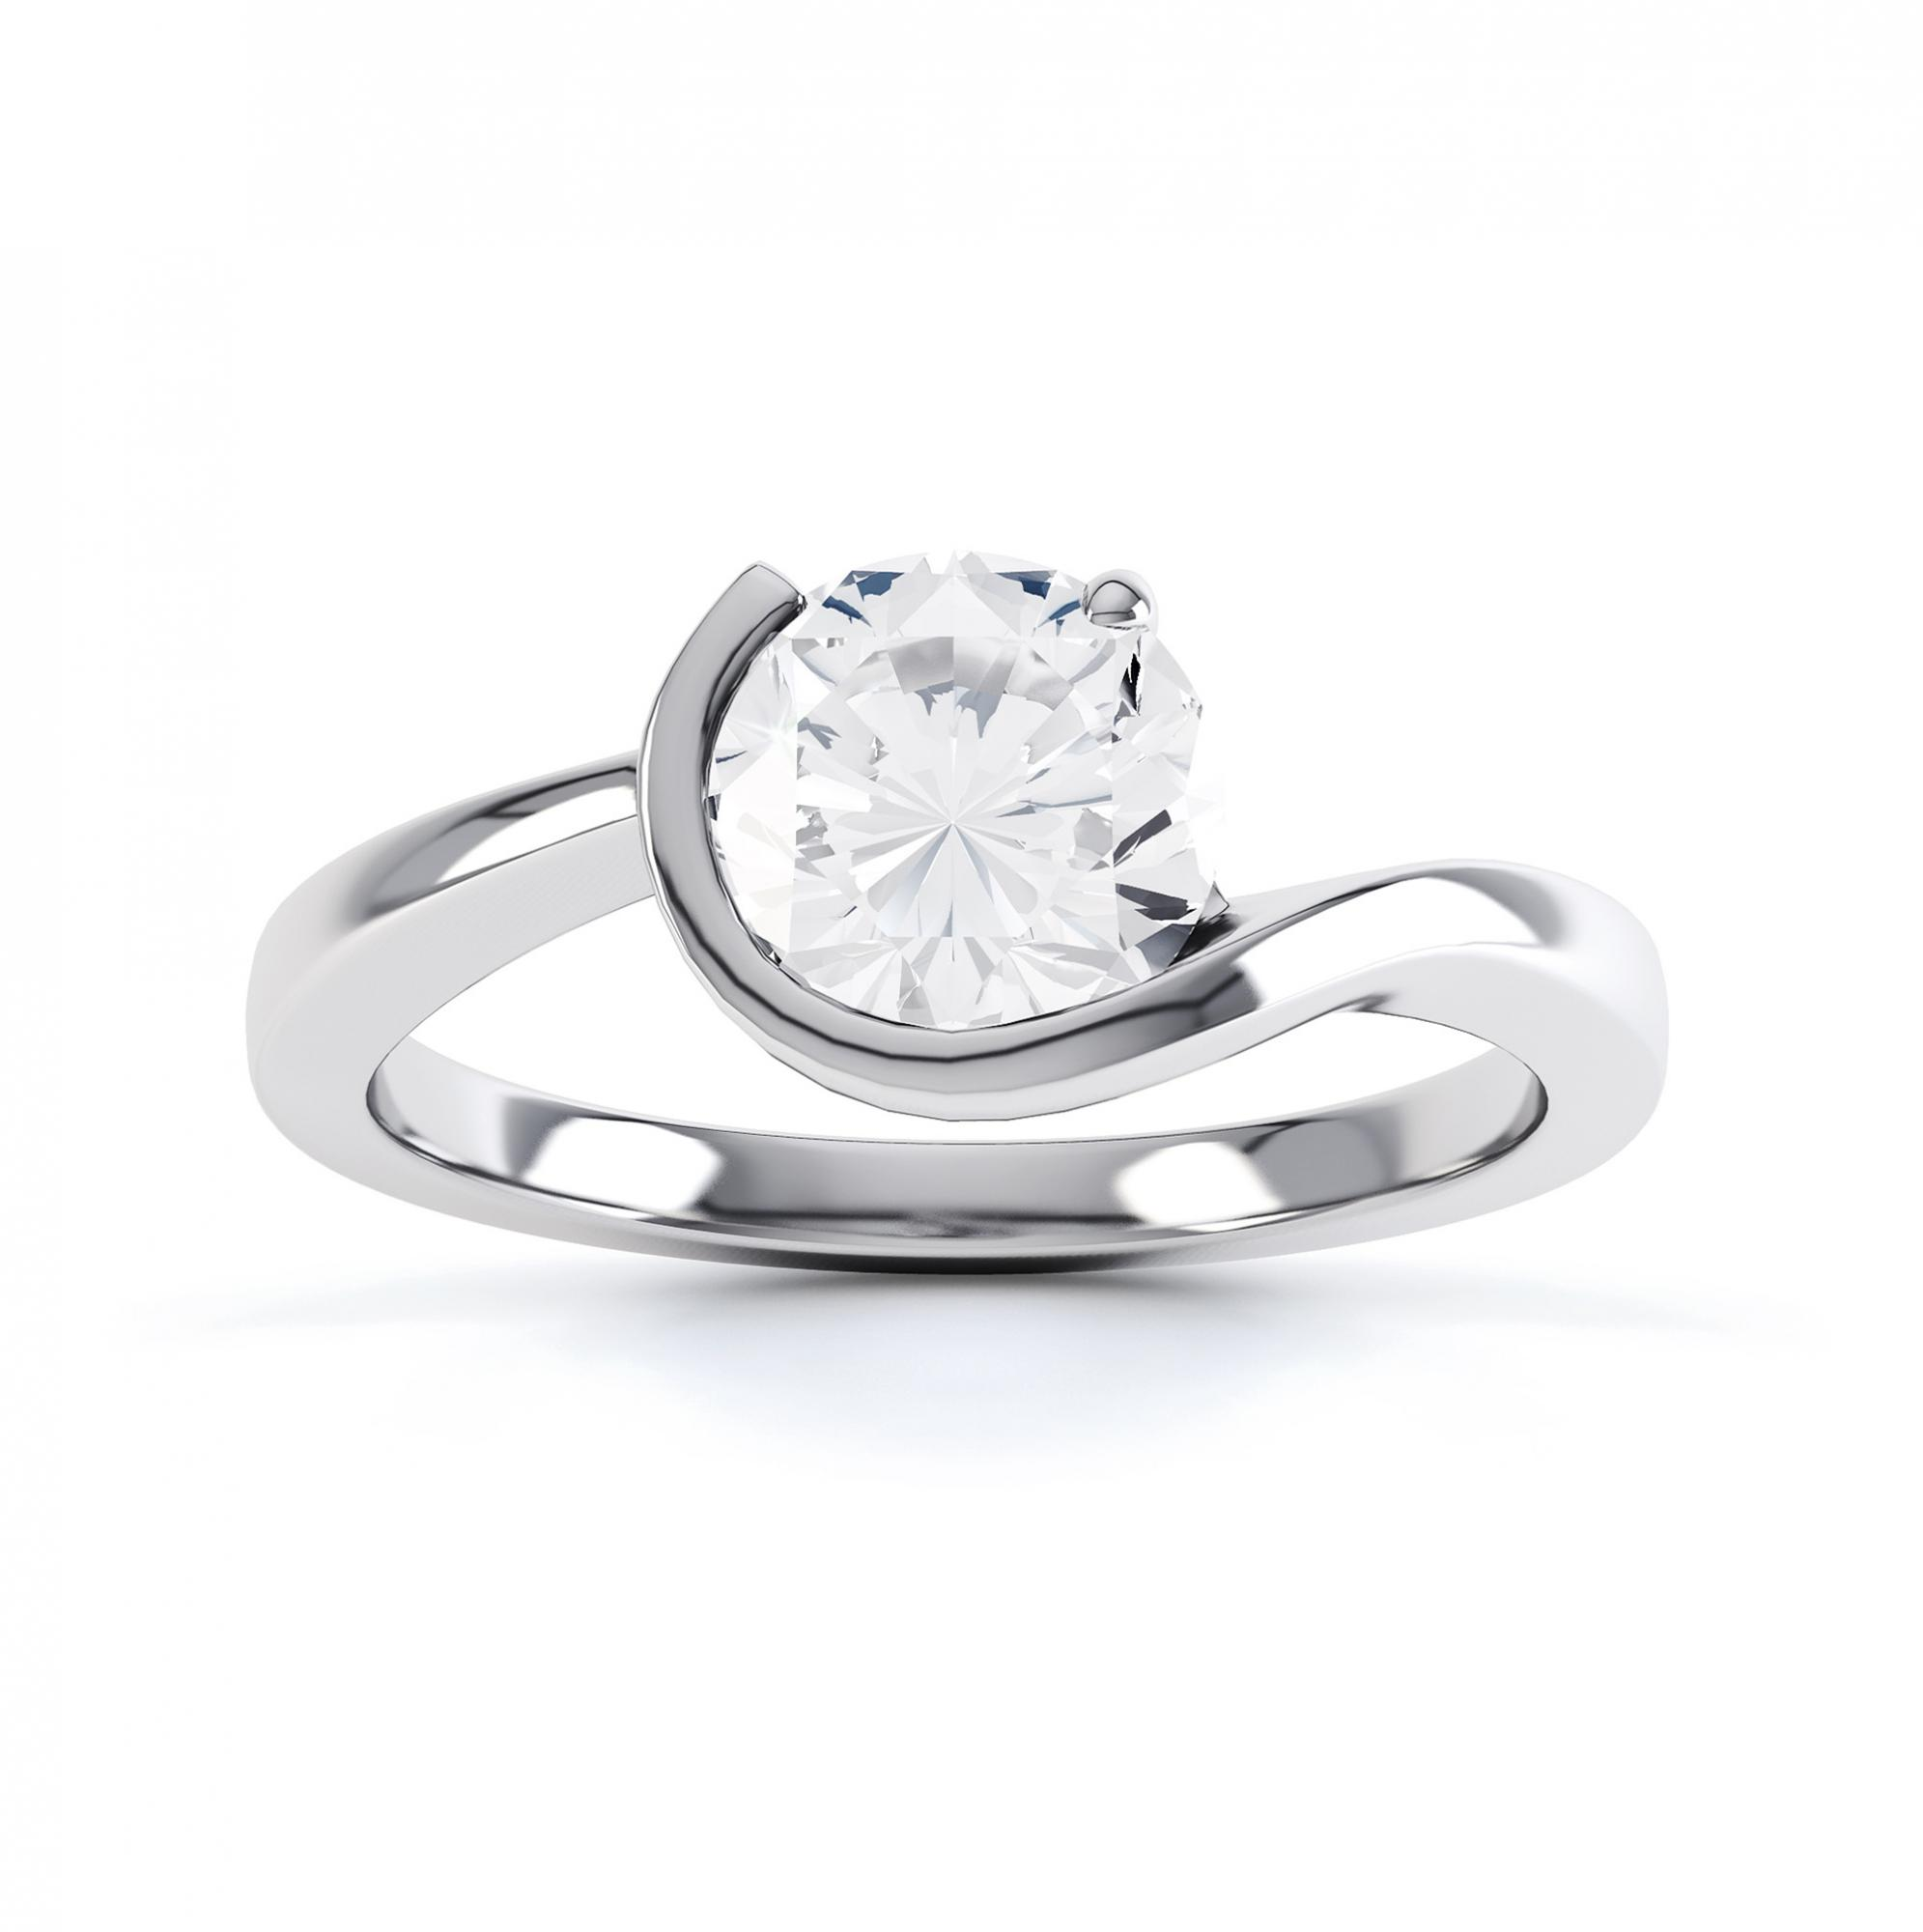 Asymmetrical round solitaire diamond engagement ring